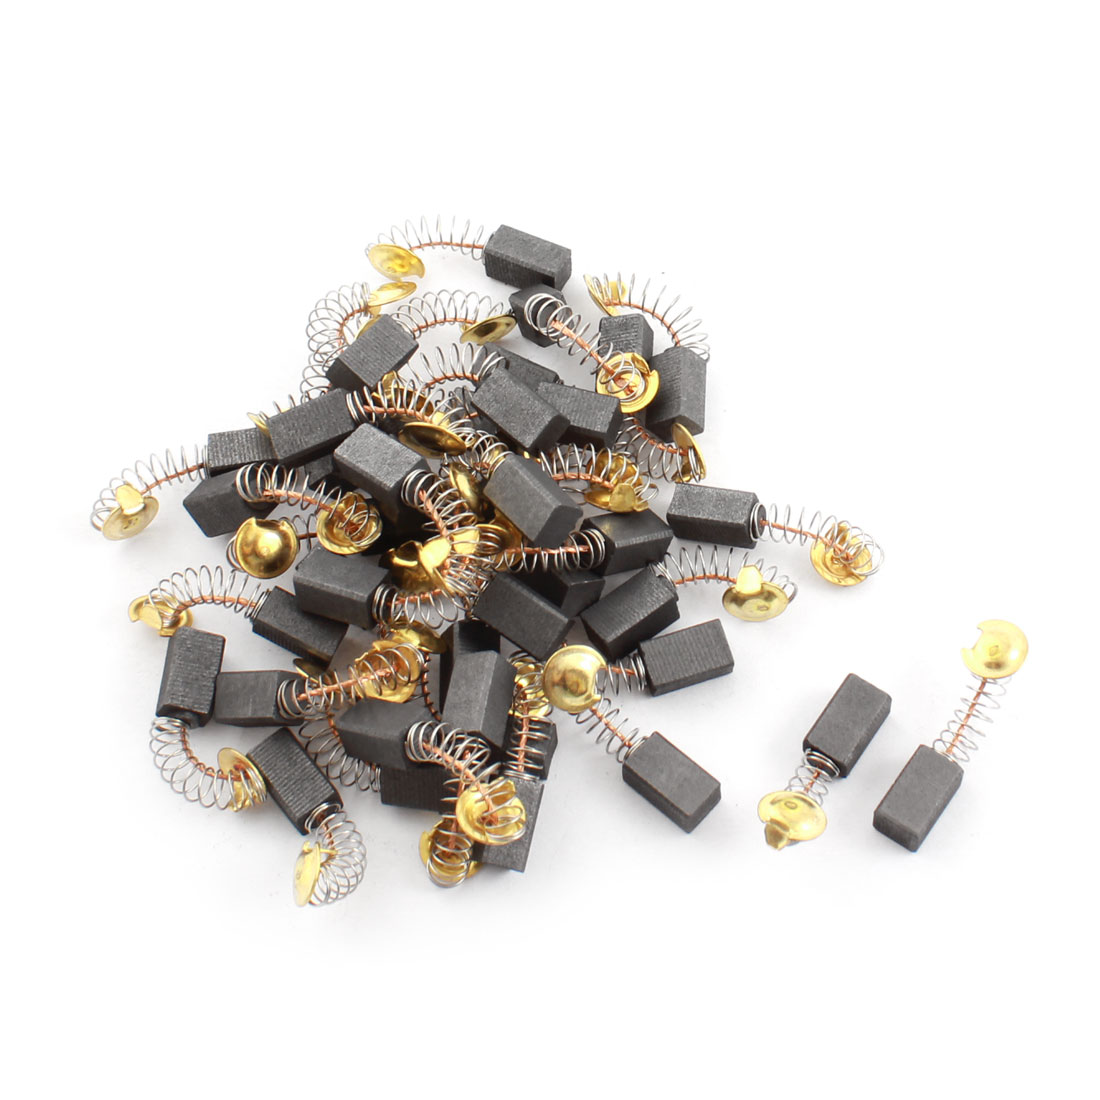 12mm x 7mm x 6mm Spring Type Electric Power Tool Motor Carbon Brushes Replacement 20 Pairs